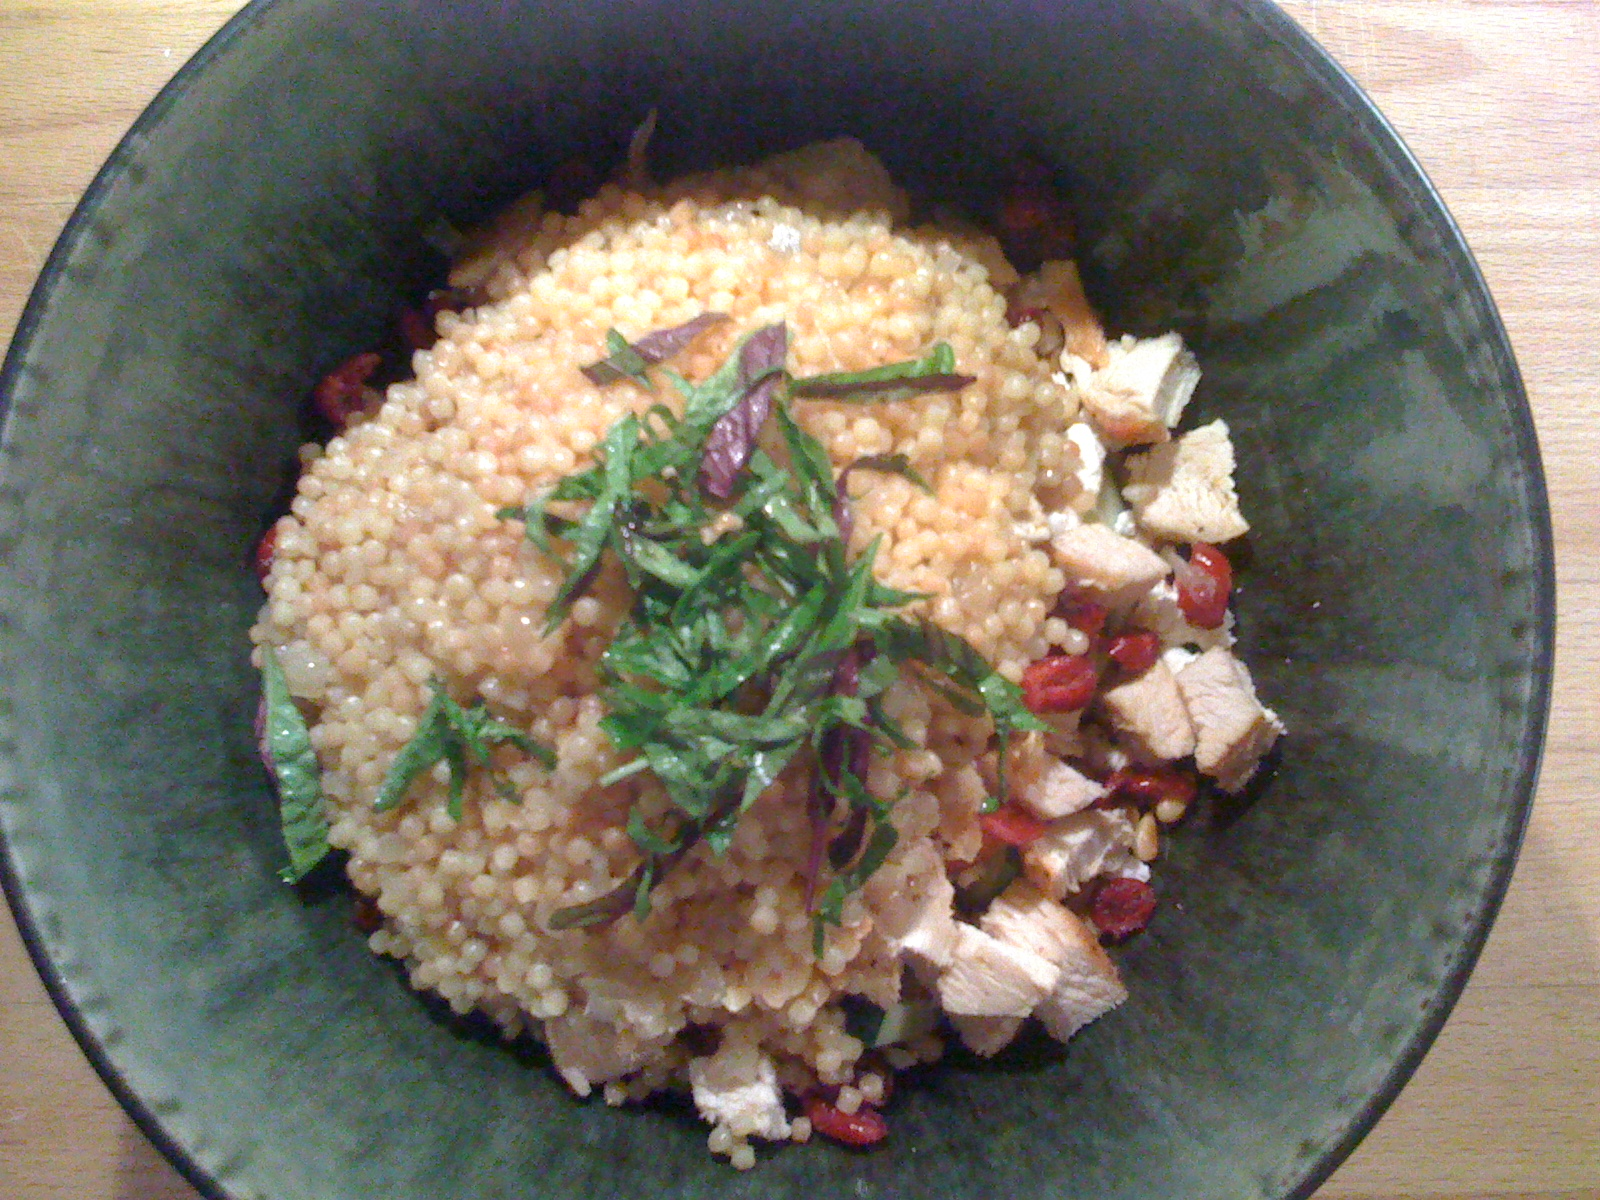 Cucumbers + Pine Nuts + Goat cheese + Chicken + Cranberries + Cous cous + Basil